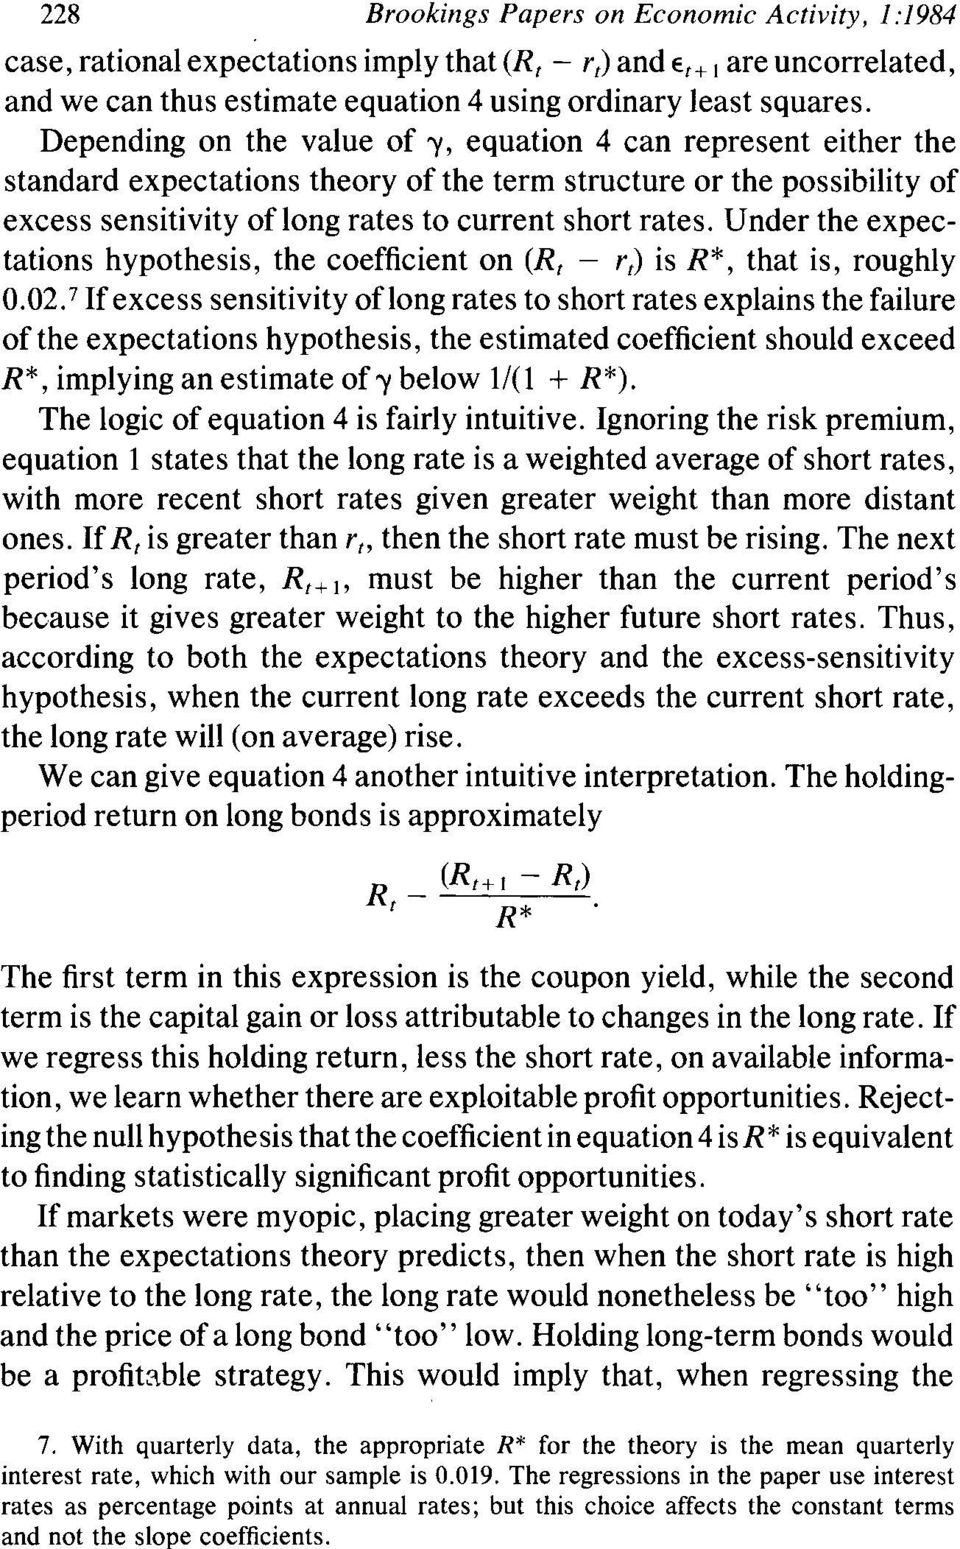 Under the expectations hypothesis, the coefficient on (Rt - rt) is R*, that is, roughly 0.02.